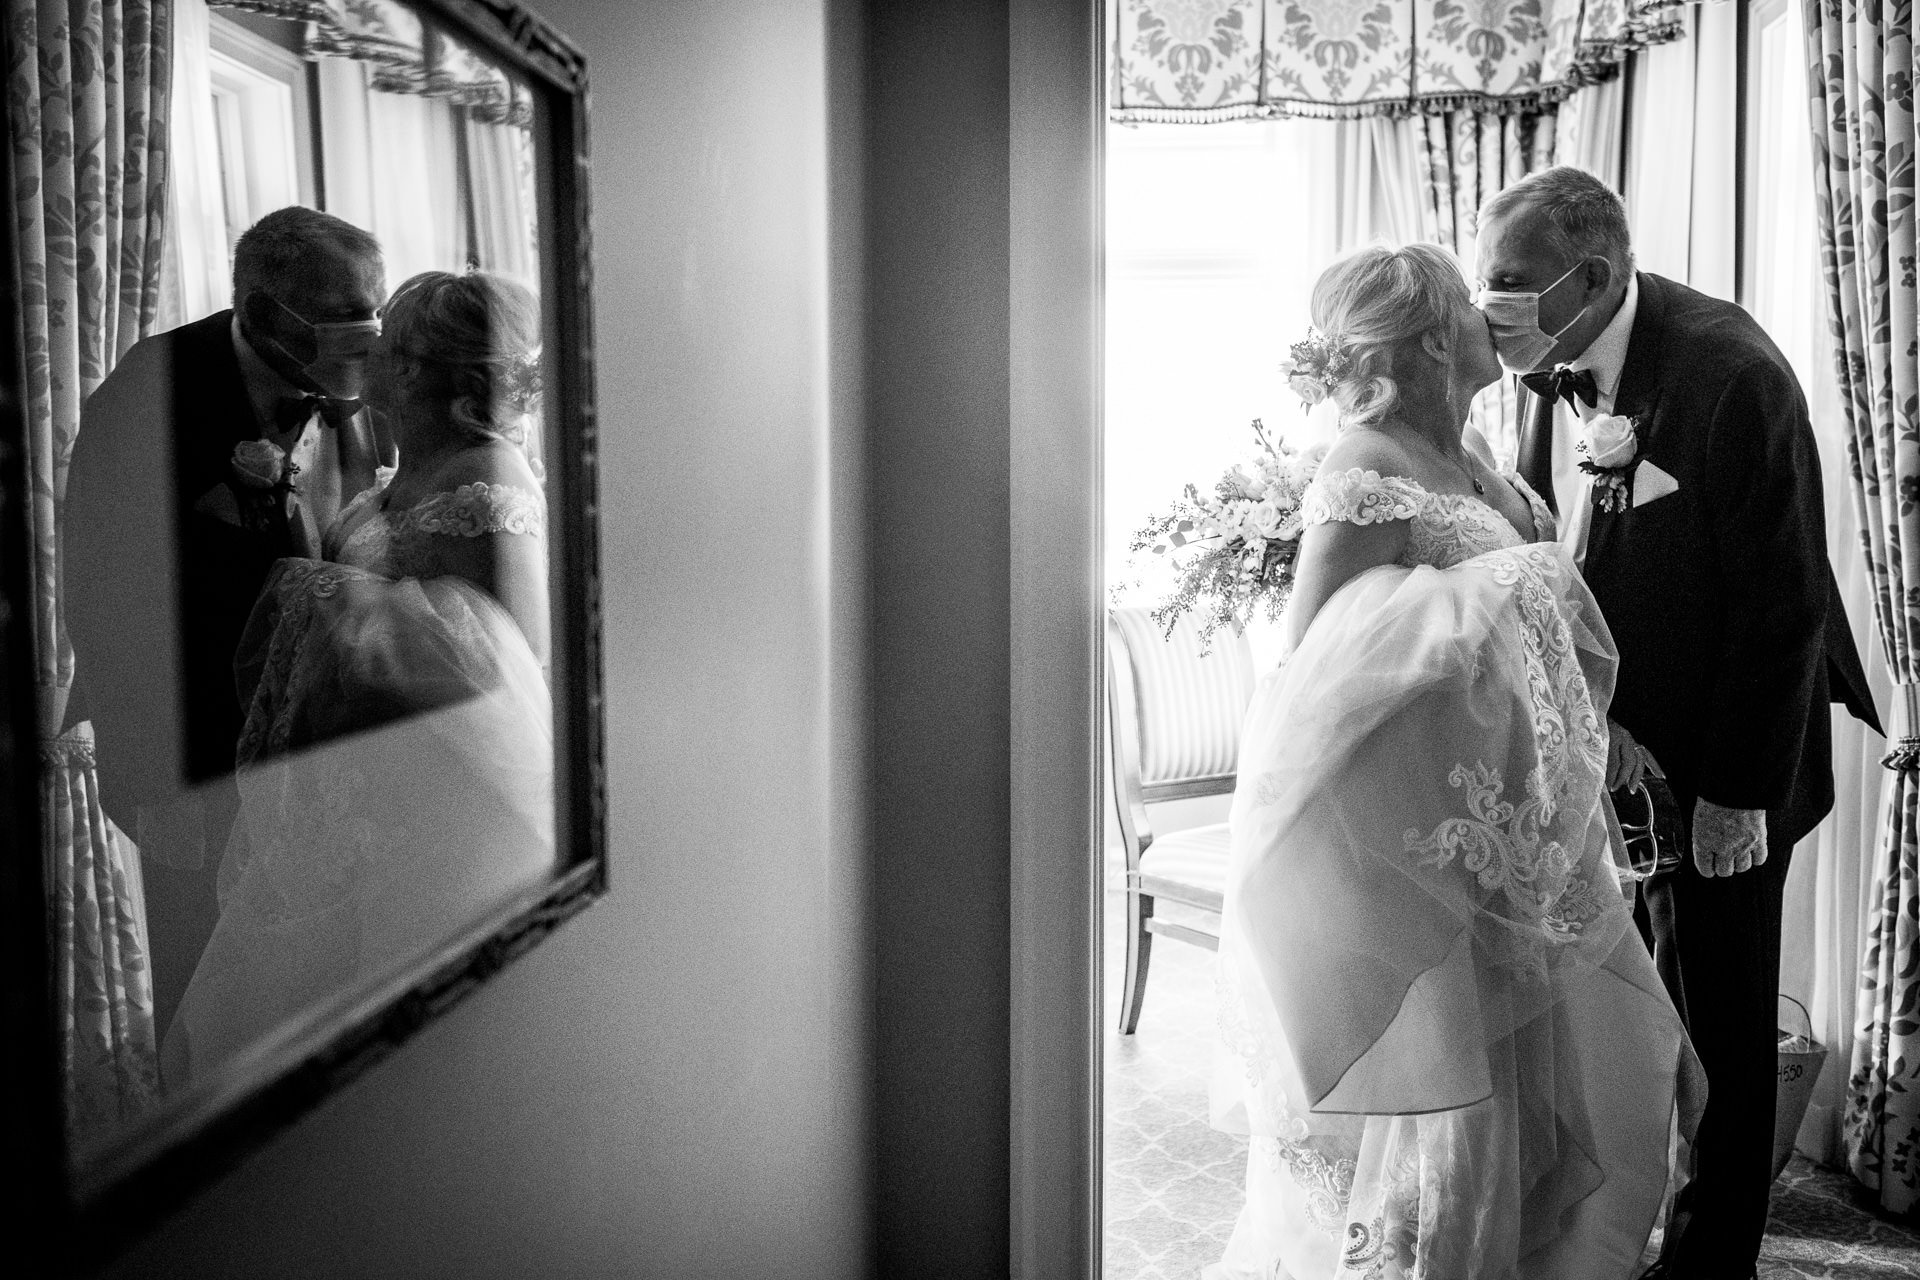 Broadmoor Hotel of Colorado Springs, CO Wedding Picture Session | A kiss before leaving their wedding suite